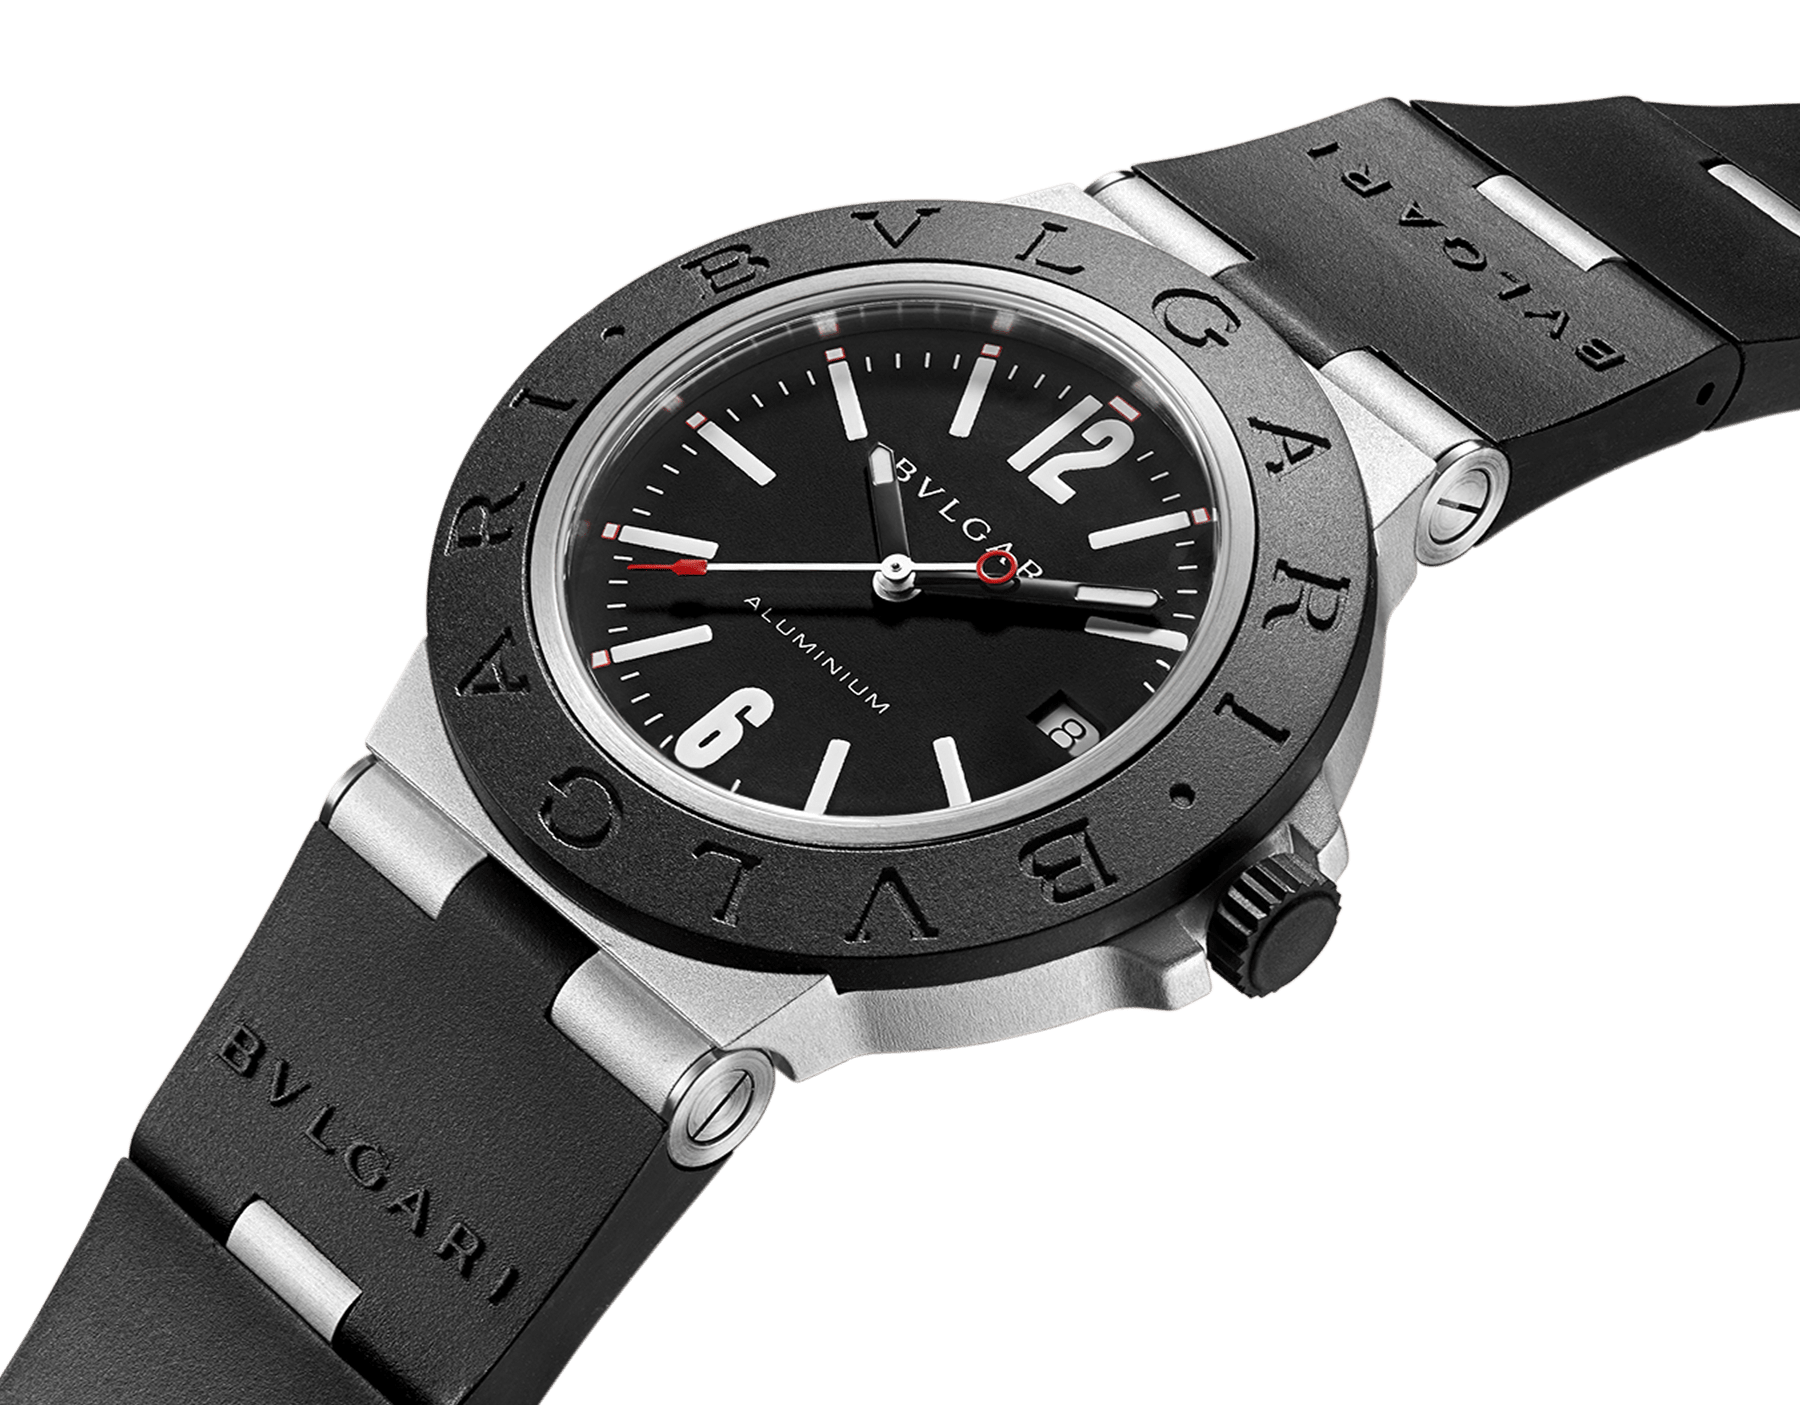 Bvlgari Aluminium watch with mechanical manufacture movement, automatic winding, 40 mm aluminium and titanium case, black rubber bezel with BVLGARI BVLGARI engraving, black dial and black rubber bracelet. Water resistant up to 100 metres 103445 image 2